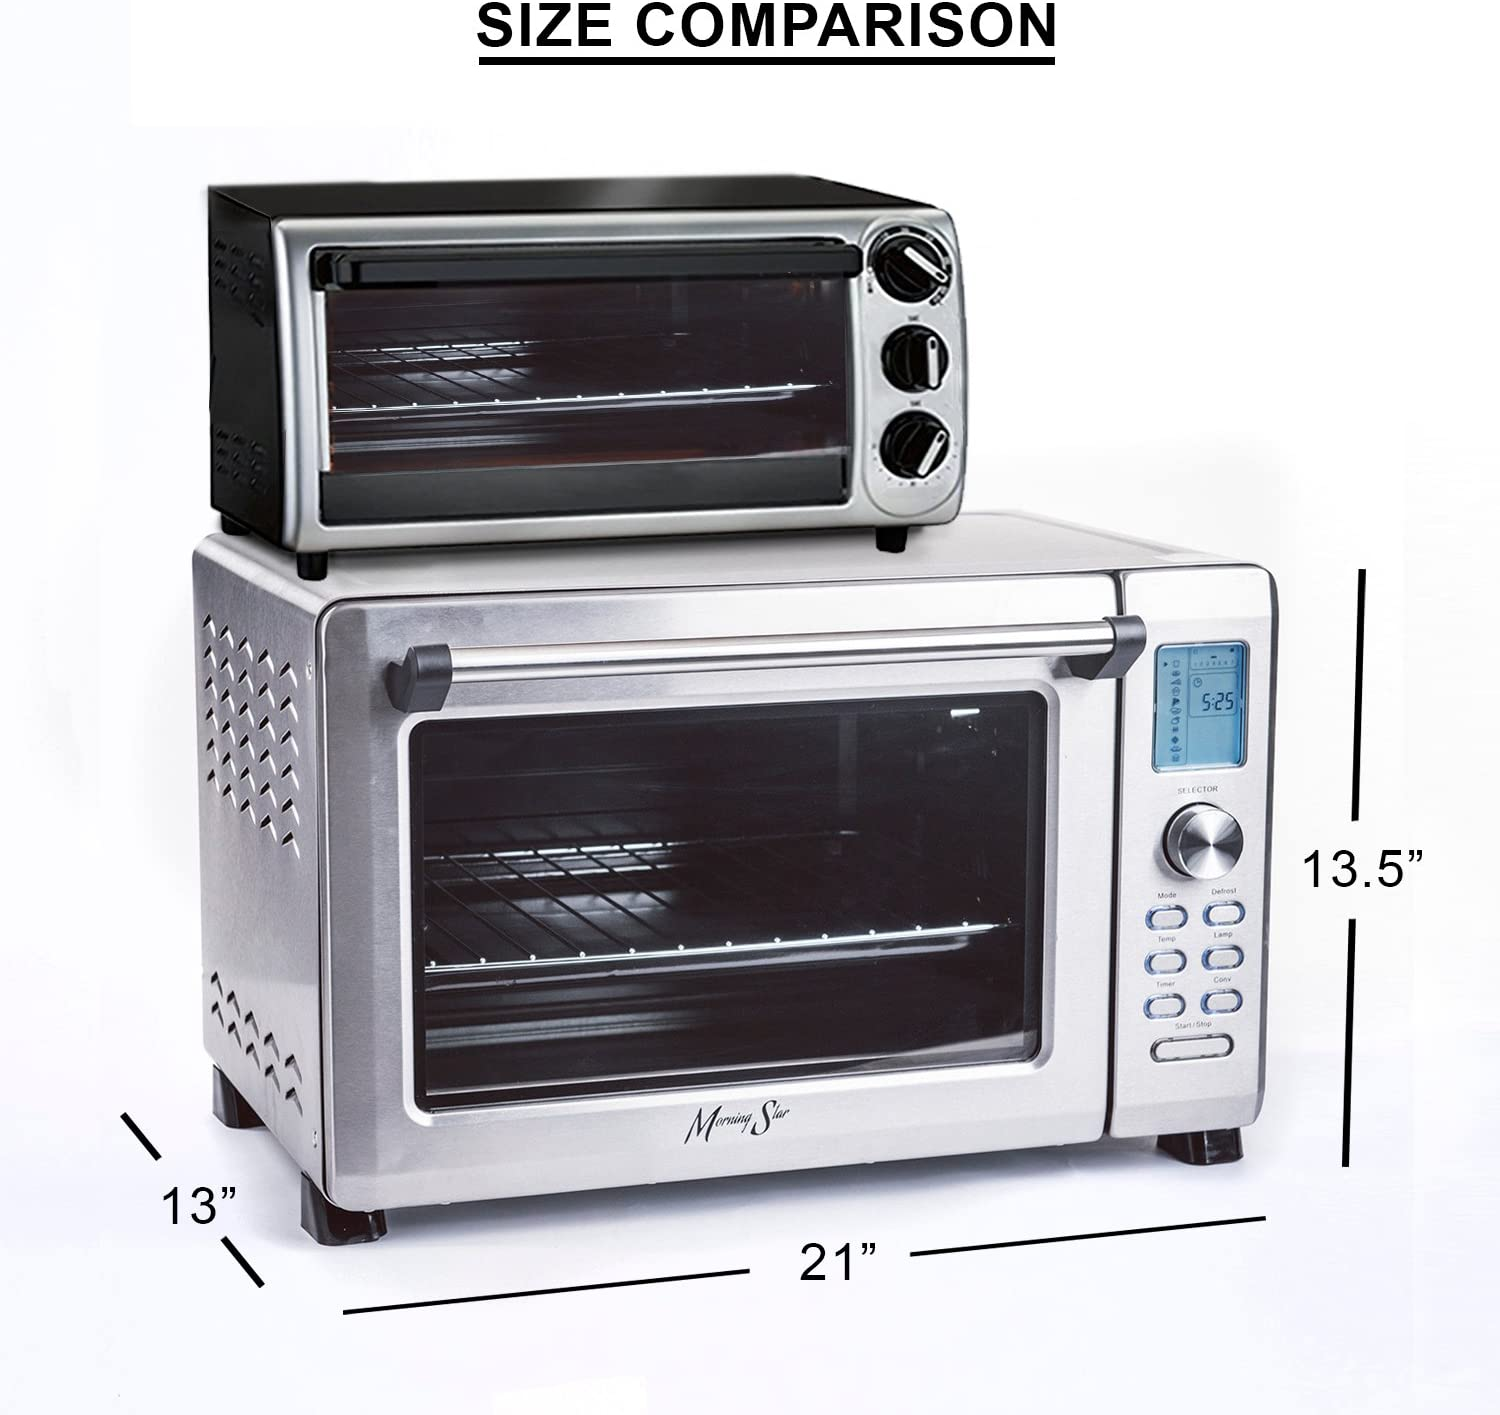 Size and Functions of a toaster oven